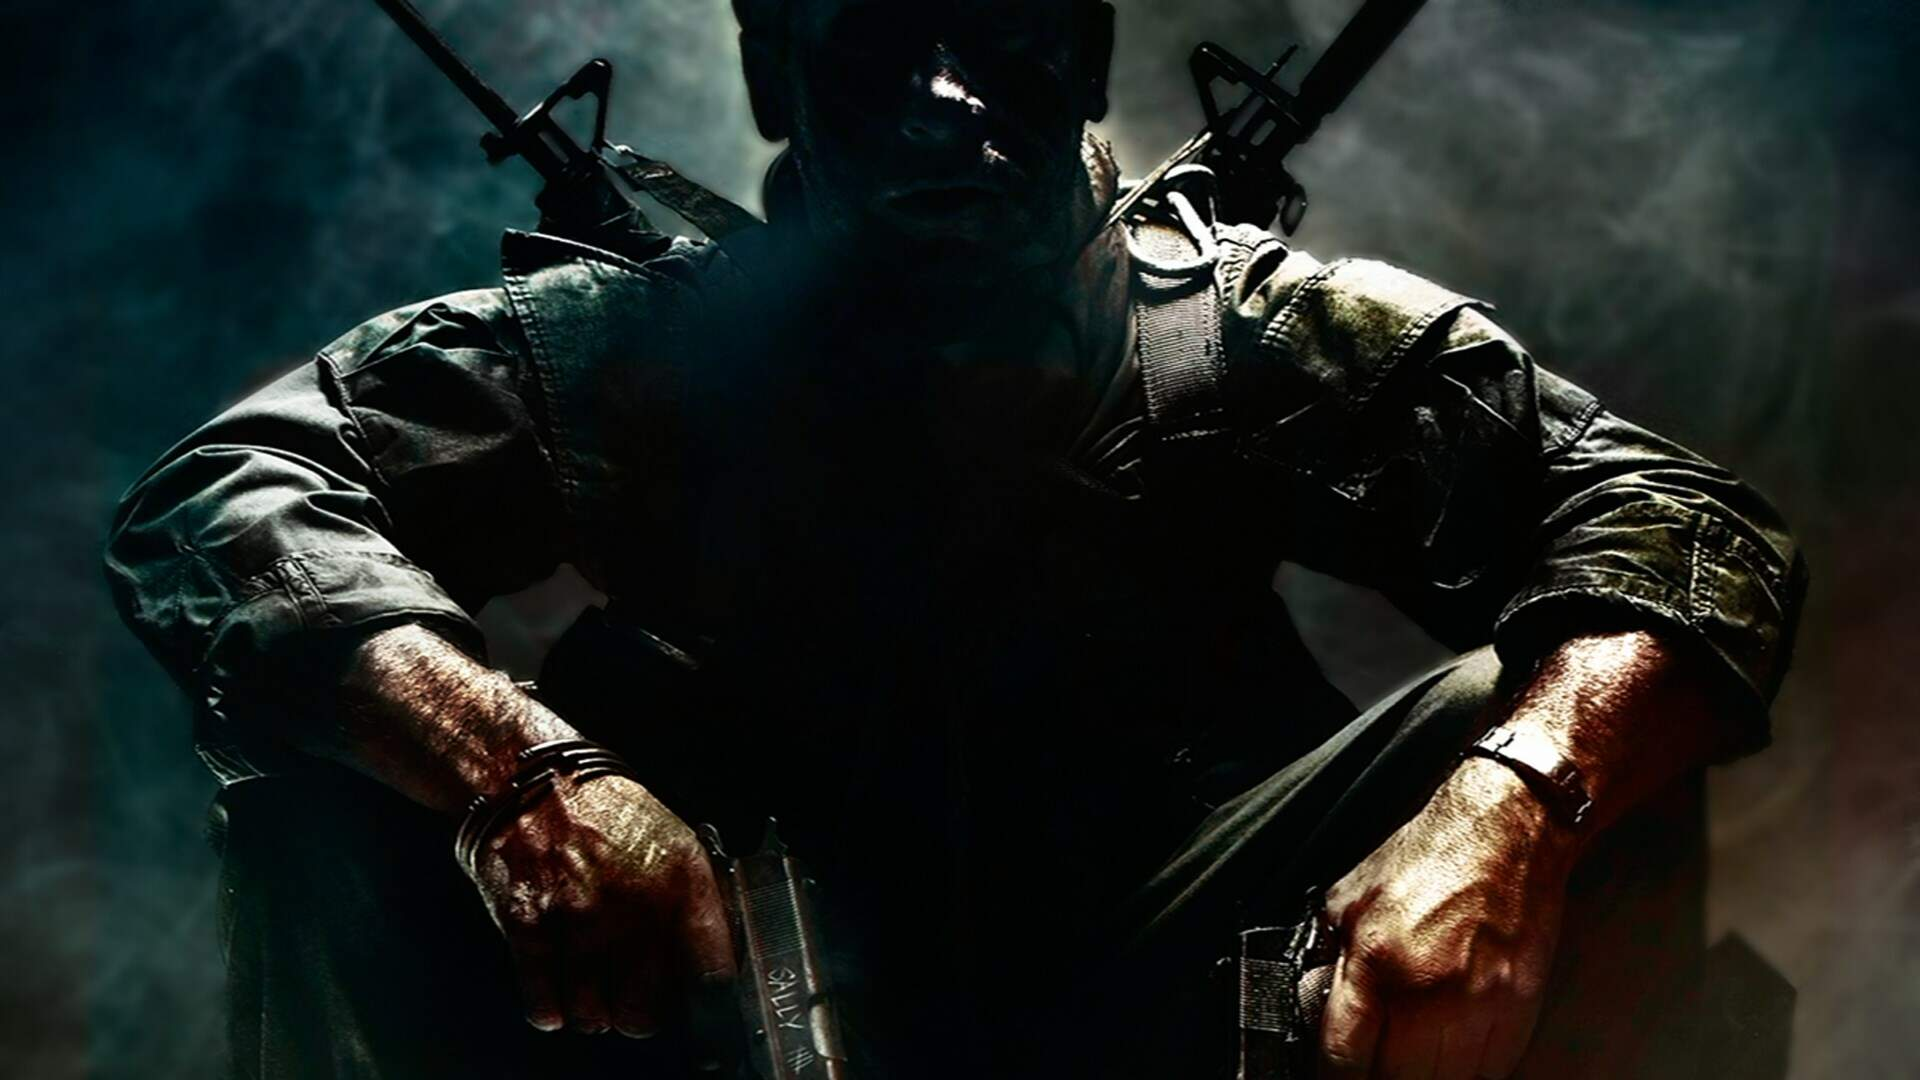 Report: 2020's Call of Duty is Called Call of Duty: Black Ops Cold War